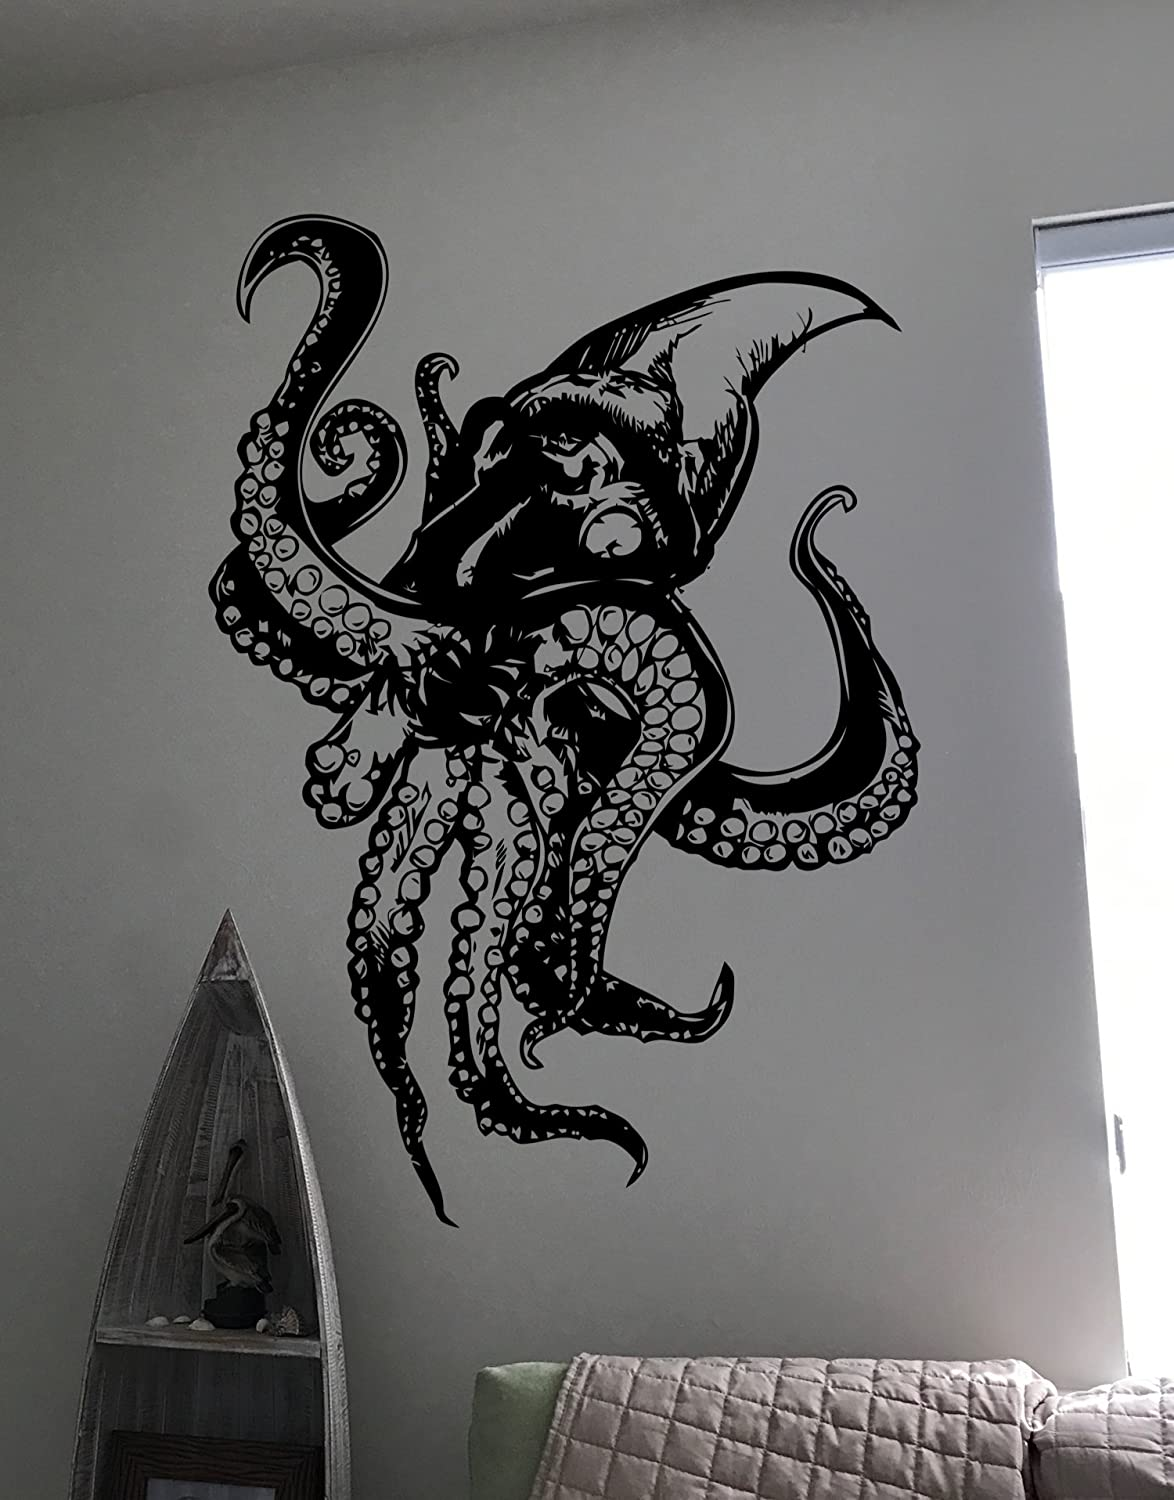 Octopus Wall Decal 23 tall x 28 wide